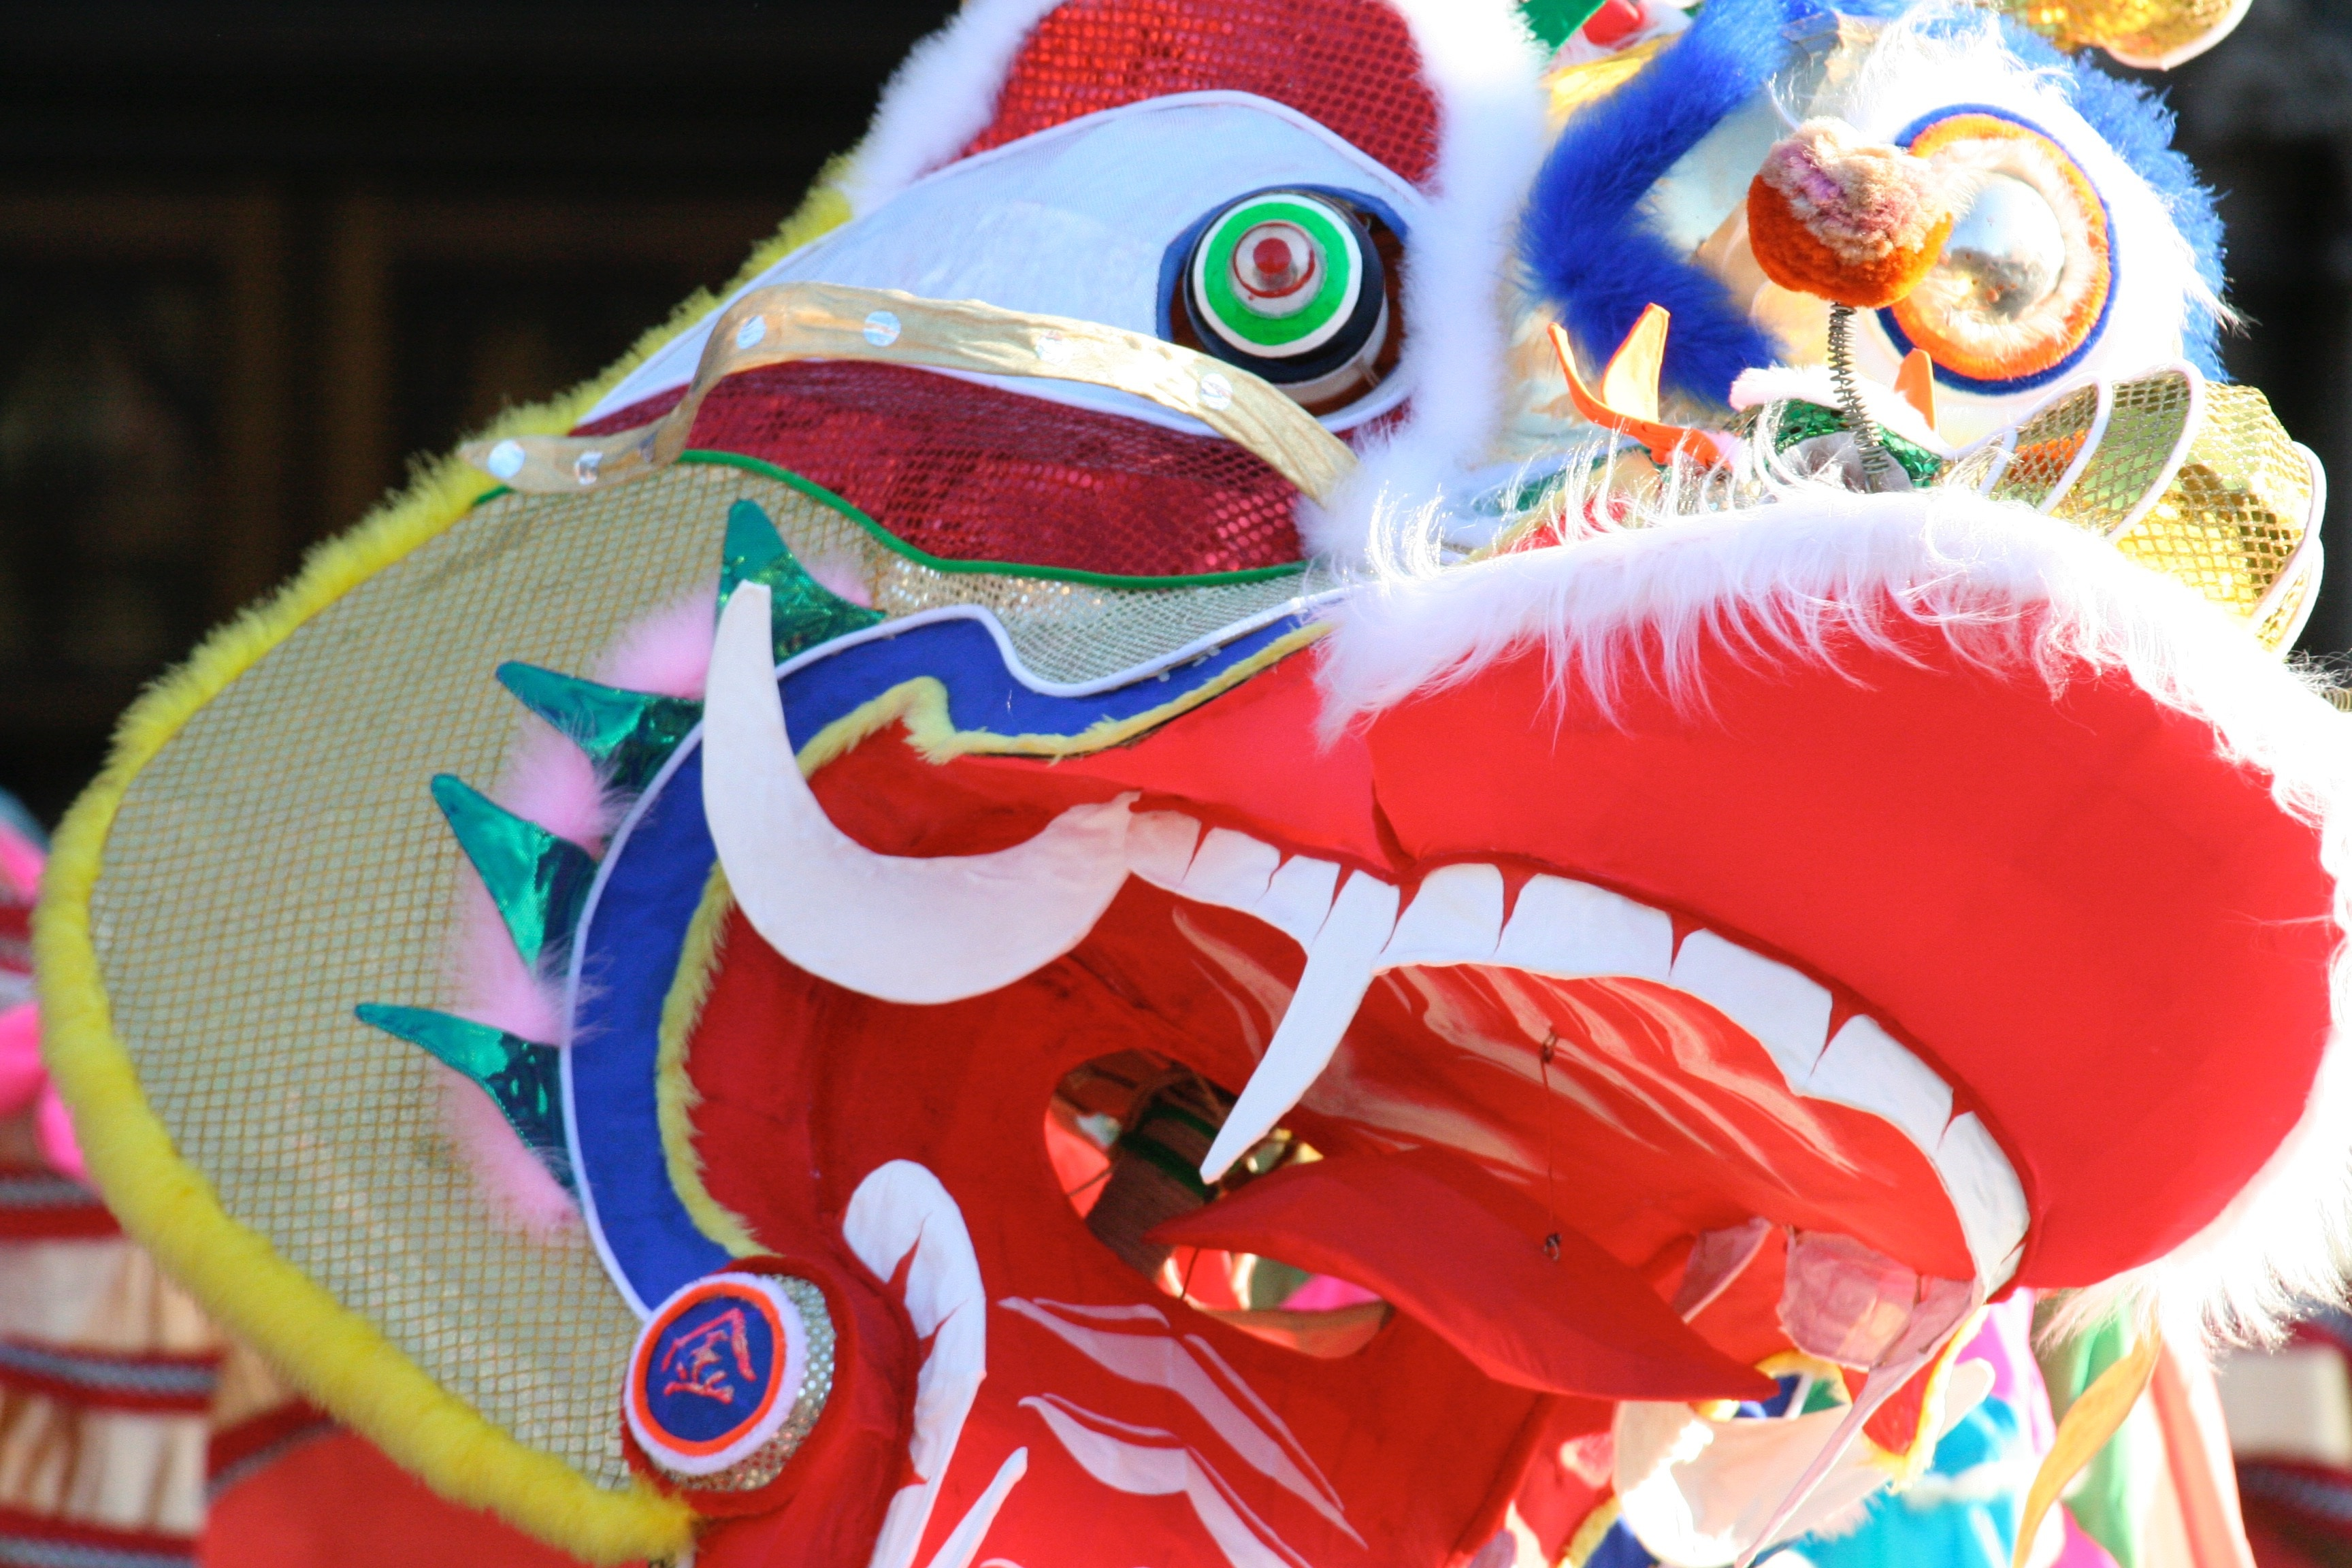 Lunar New Year Tet Festival at Qualcomm - Awesome Events and